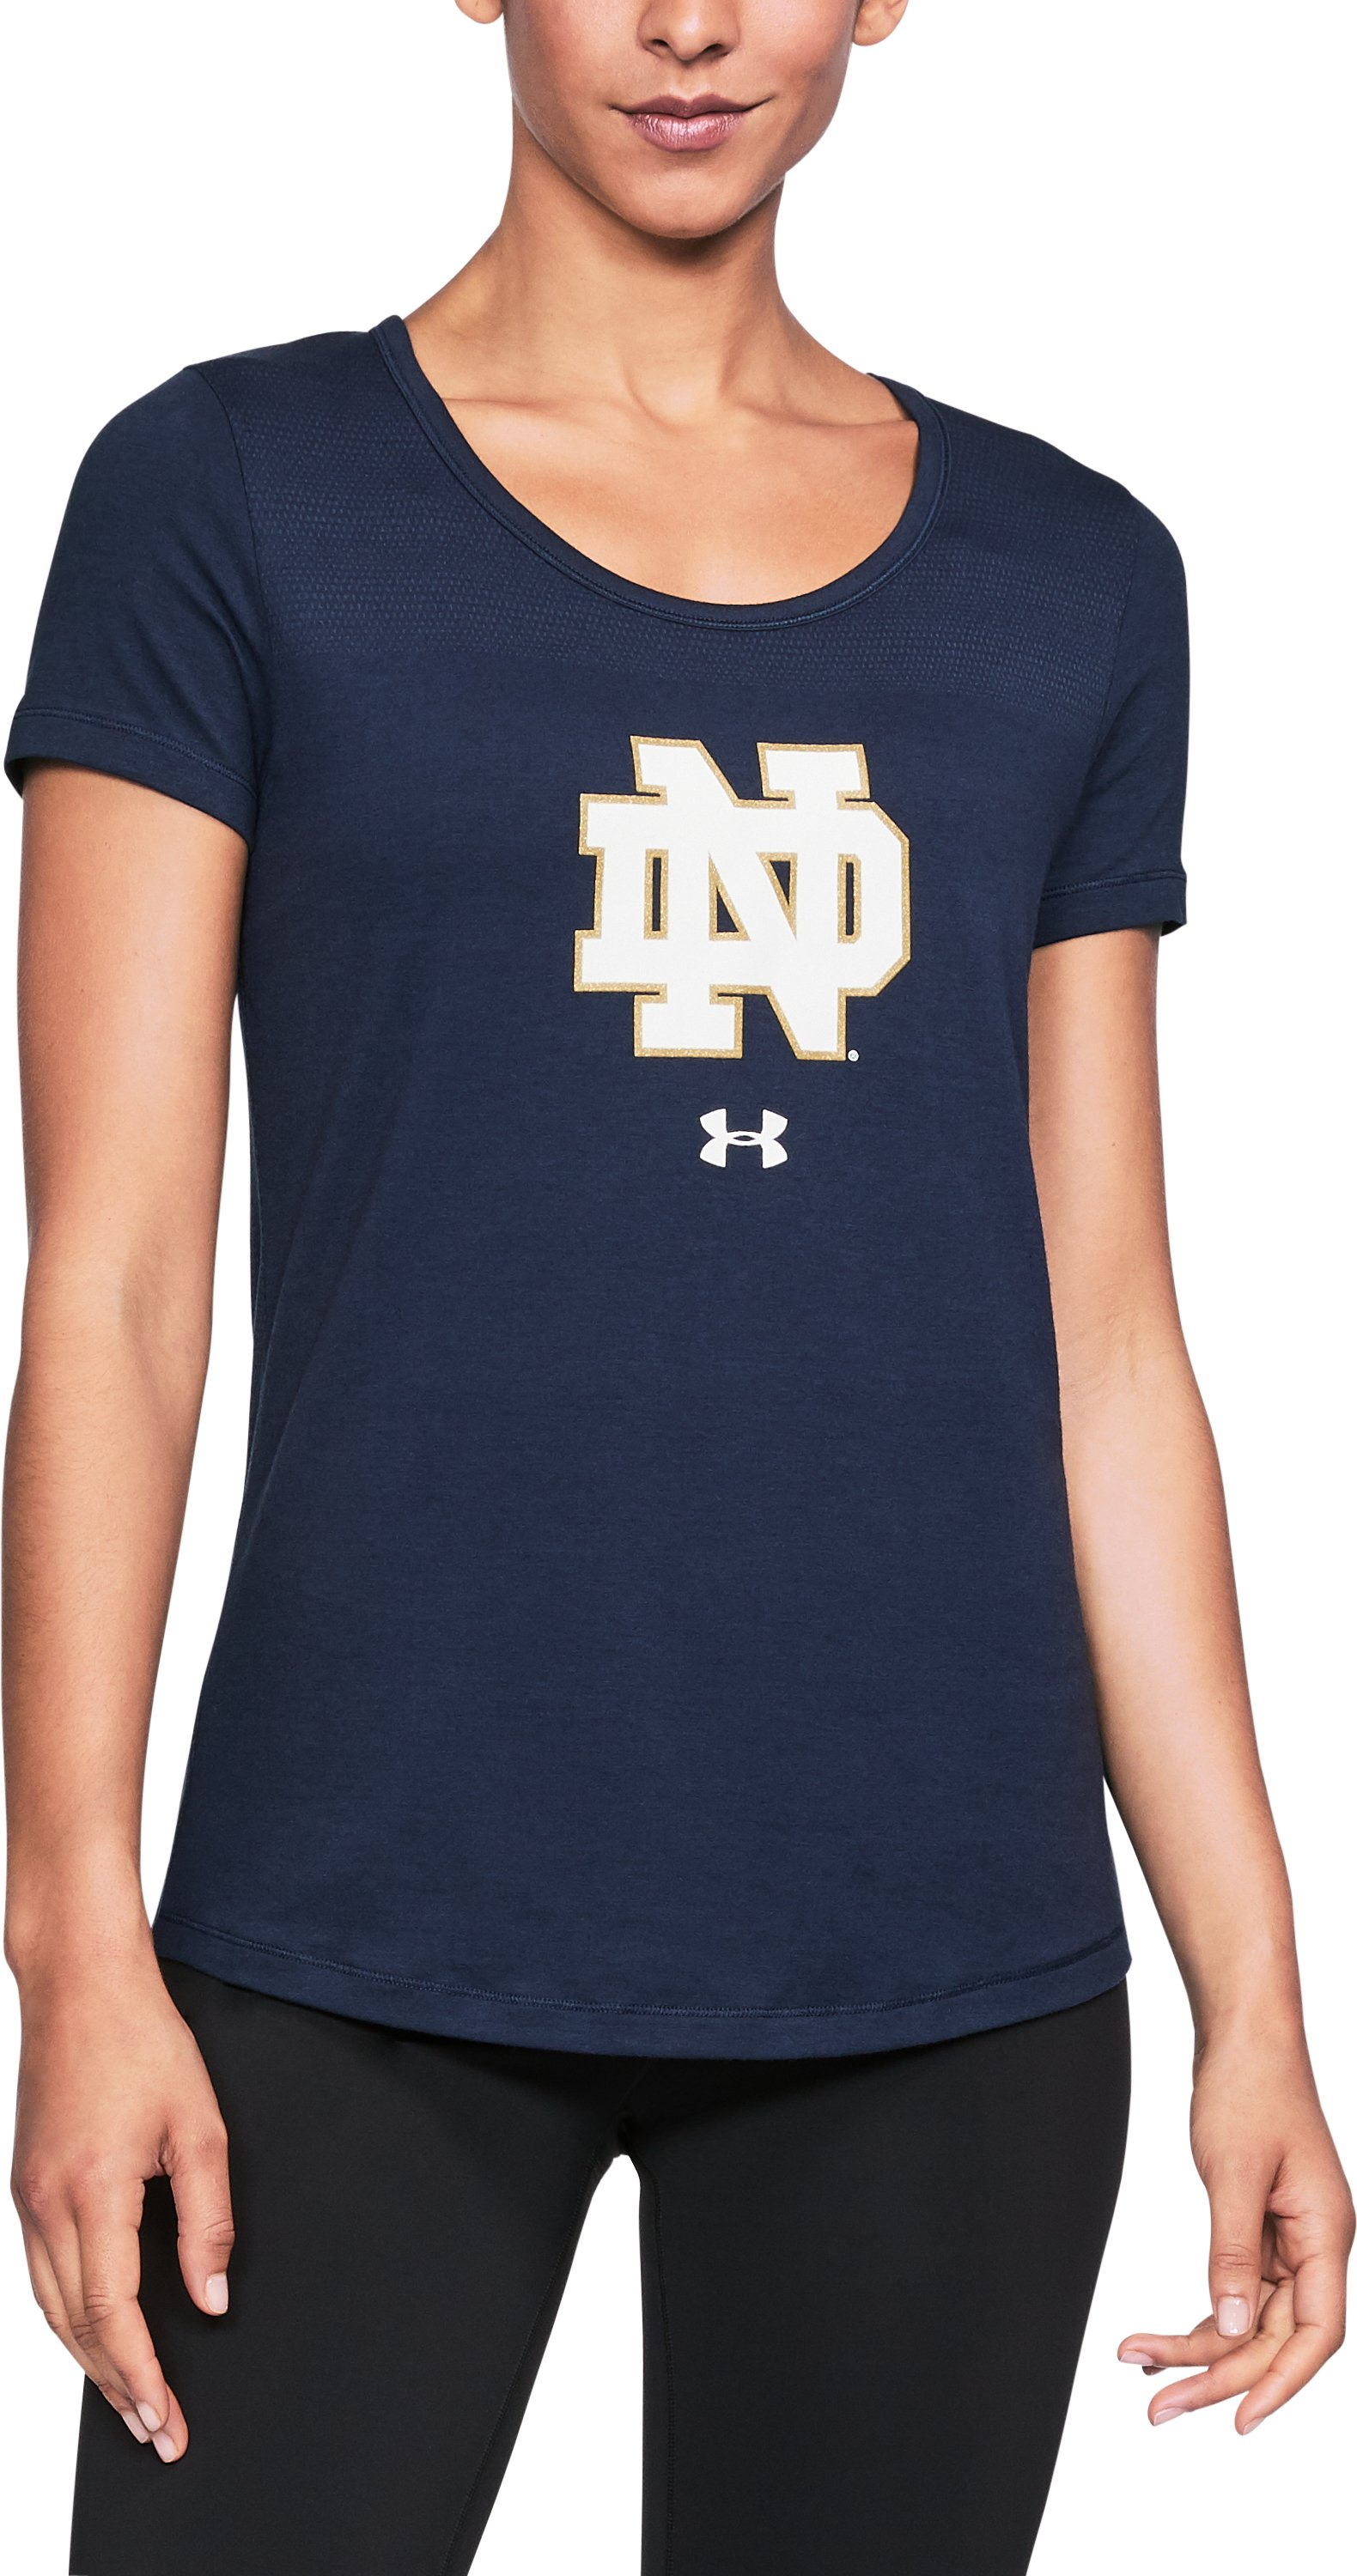 Women's Notre Dame UA Vent Short Sleeve T-Shirt, Midnight Navy